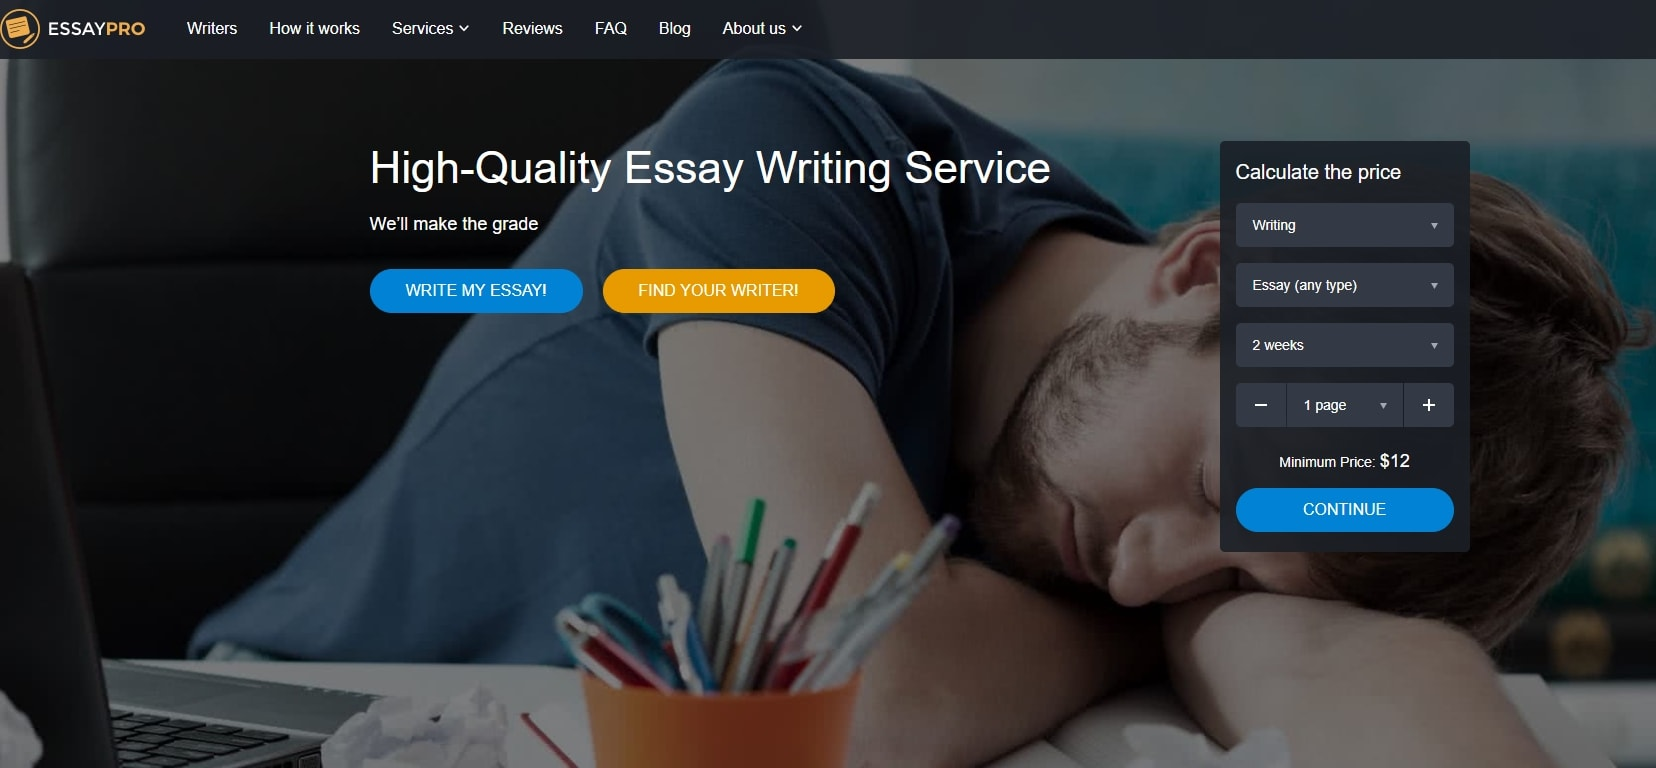 essaypro com review college paper writing service reviews essaypro com review